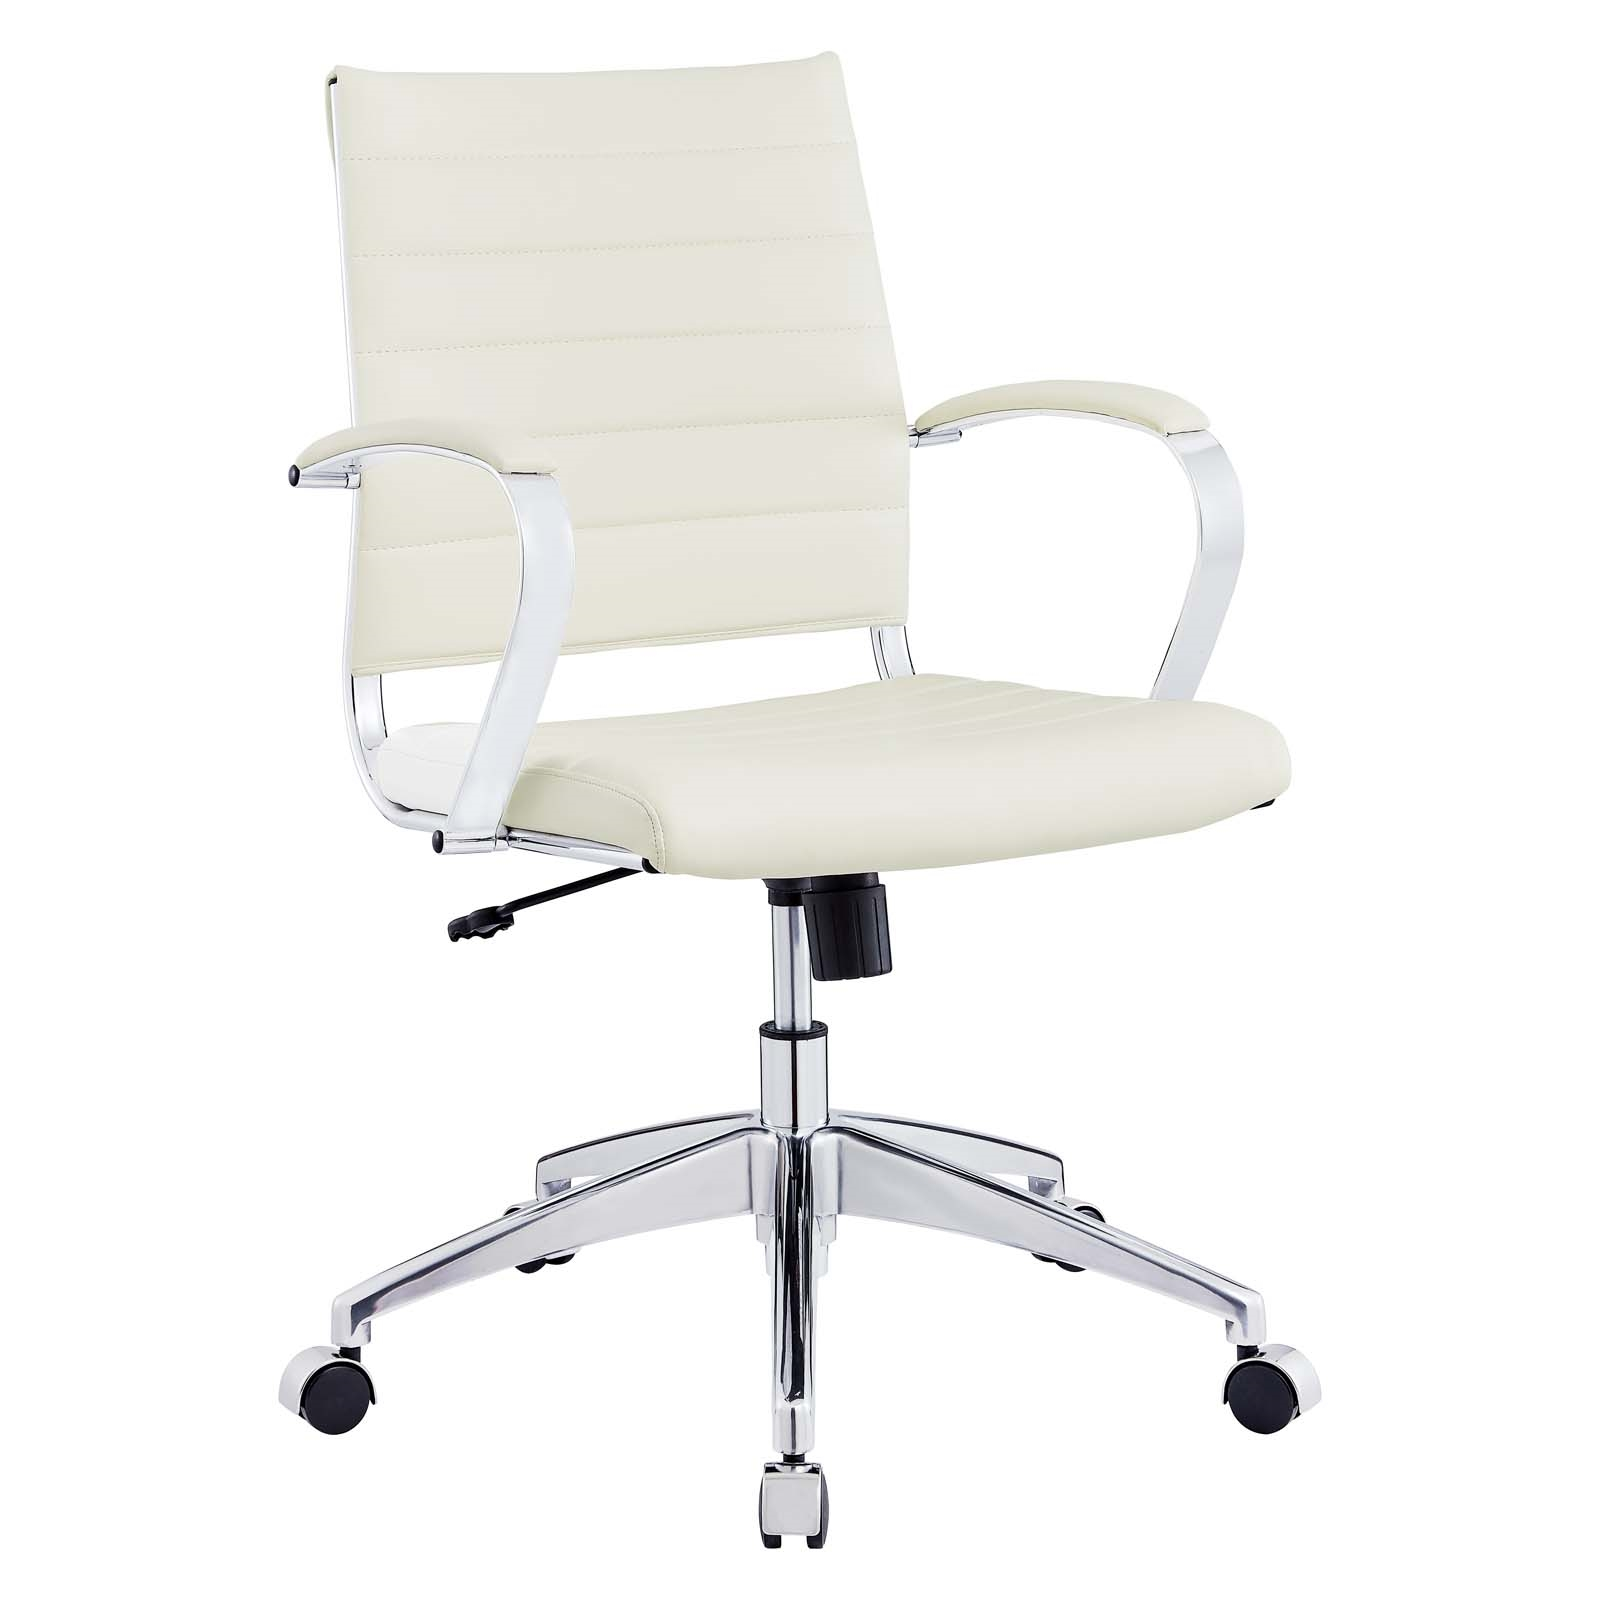 Back Office Chair in White